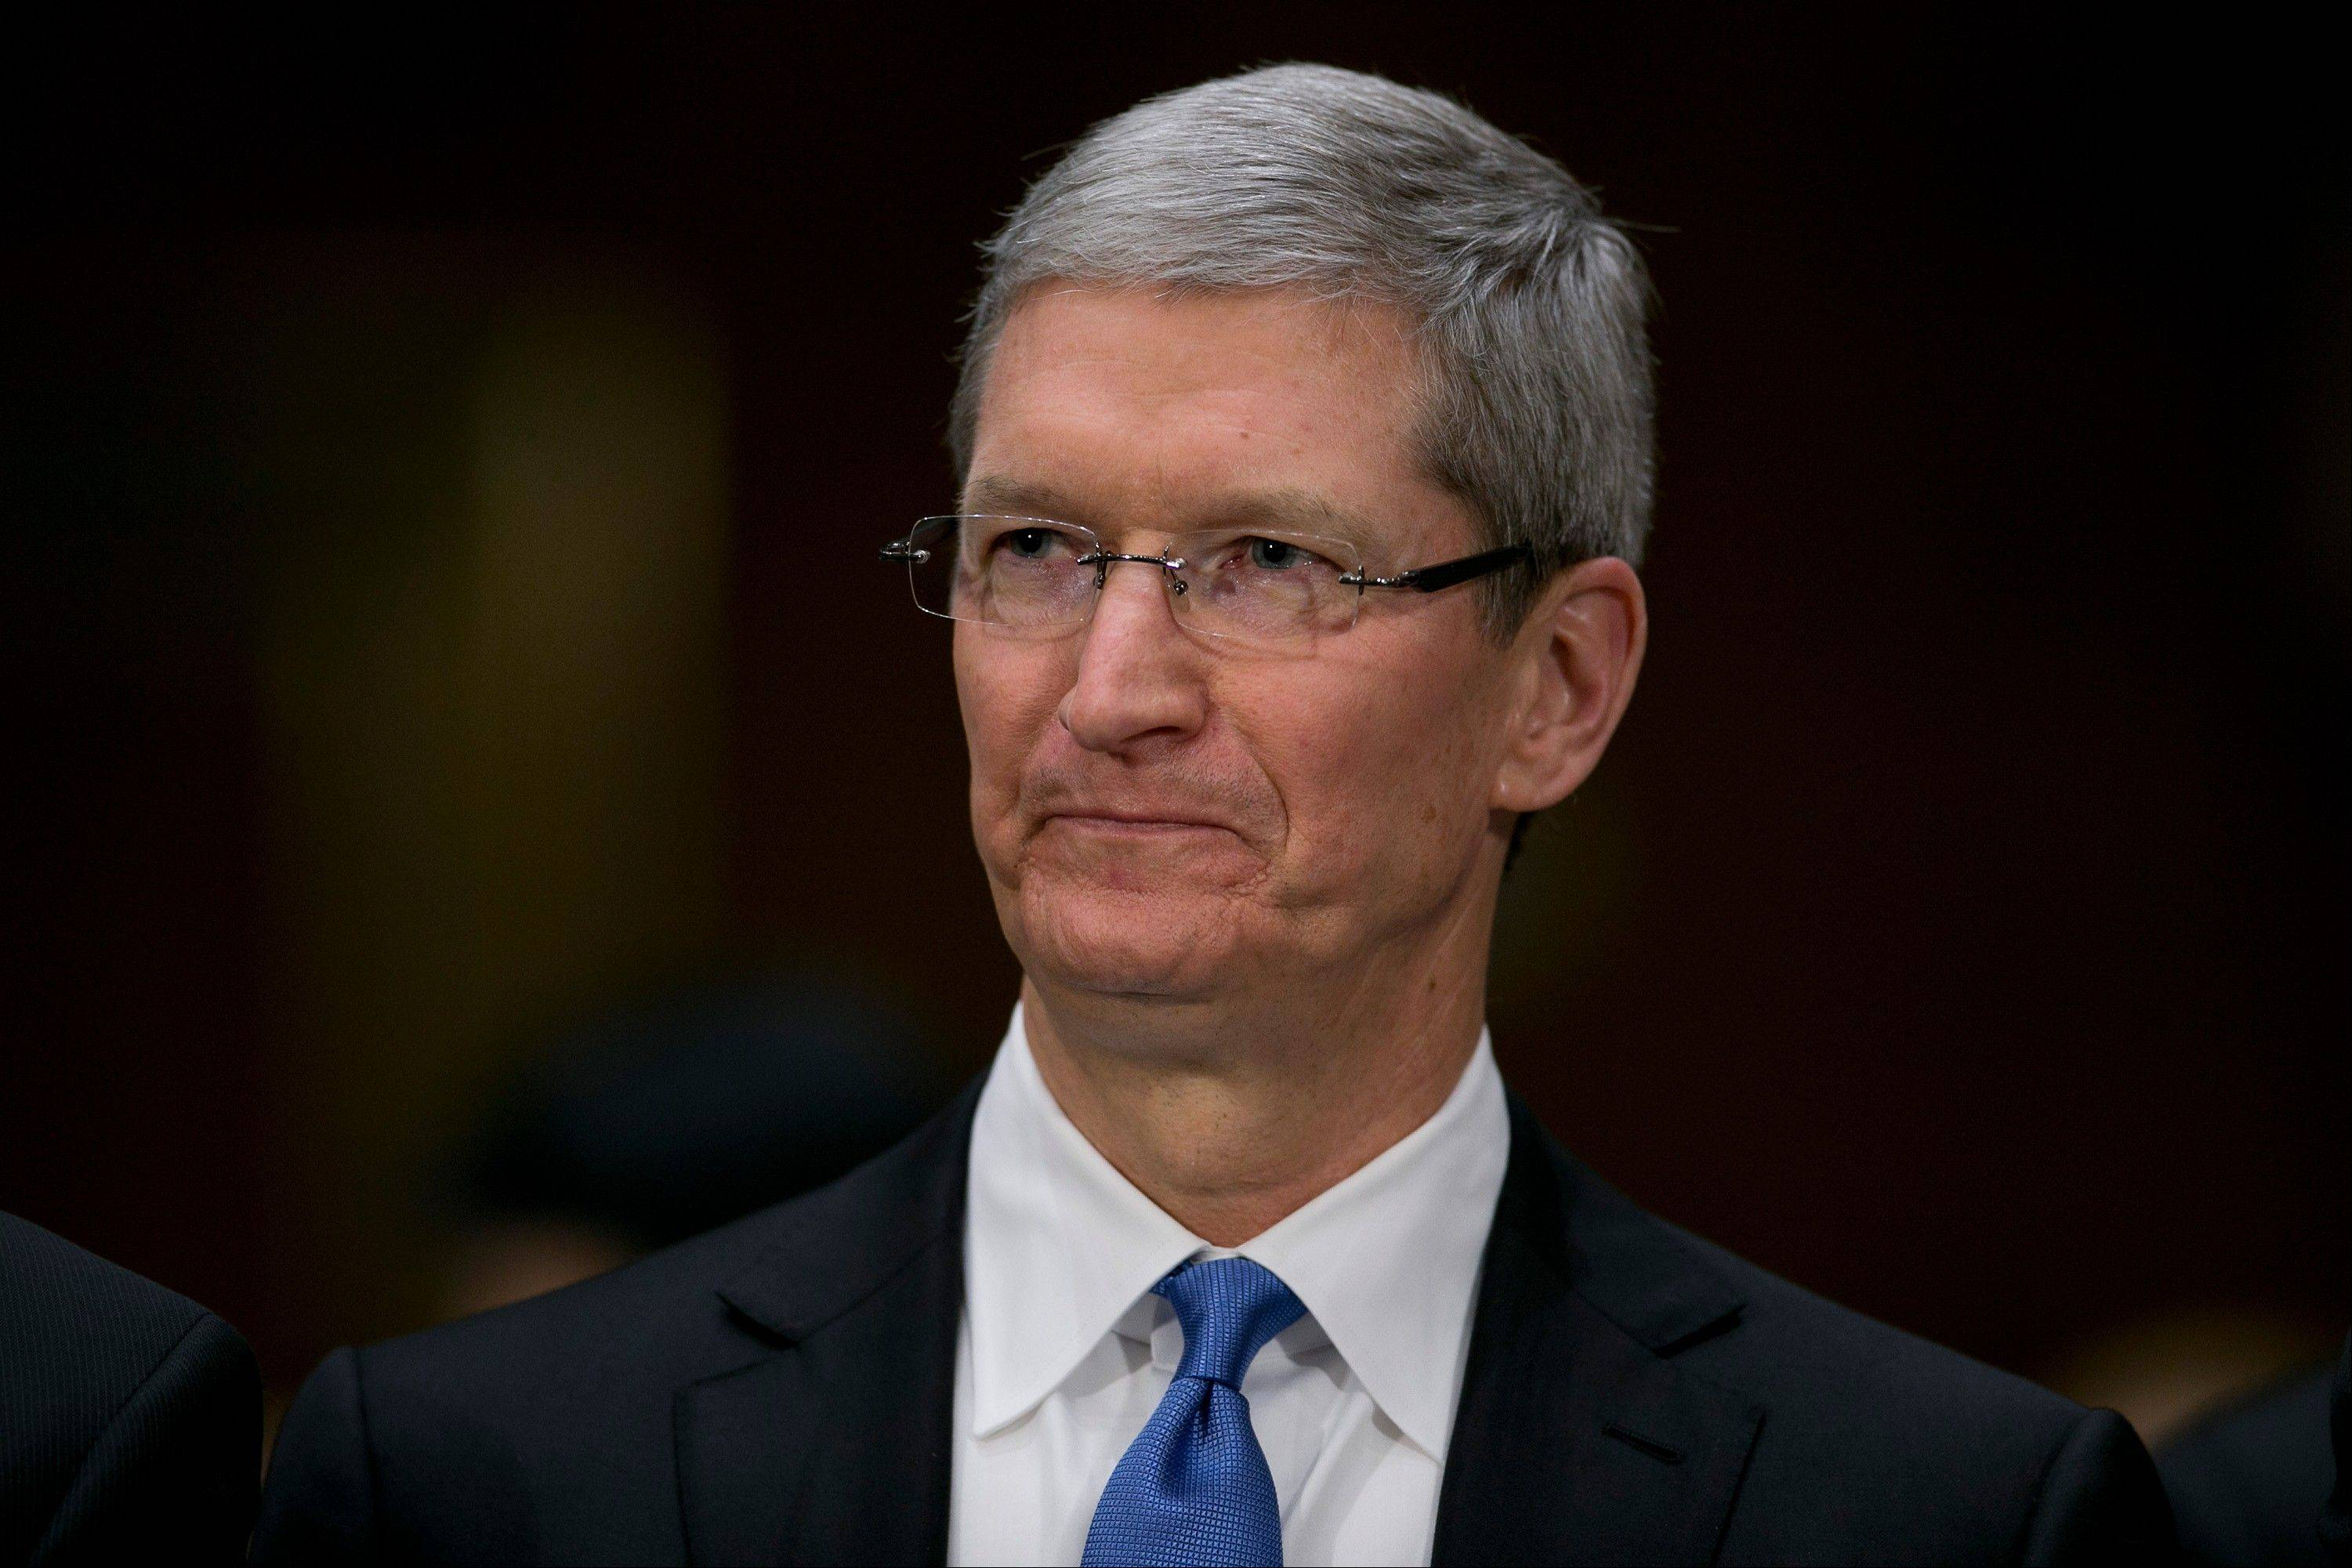 Tim Cook, chief executive officer of Apple Inc., will face off against U.S. senators leveling accusations the iPhone maker has created a web of offshore entities to avoid paying billions of dollars in U.S. taxes.